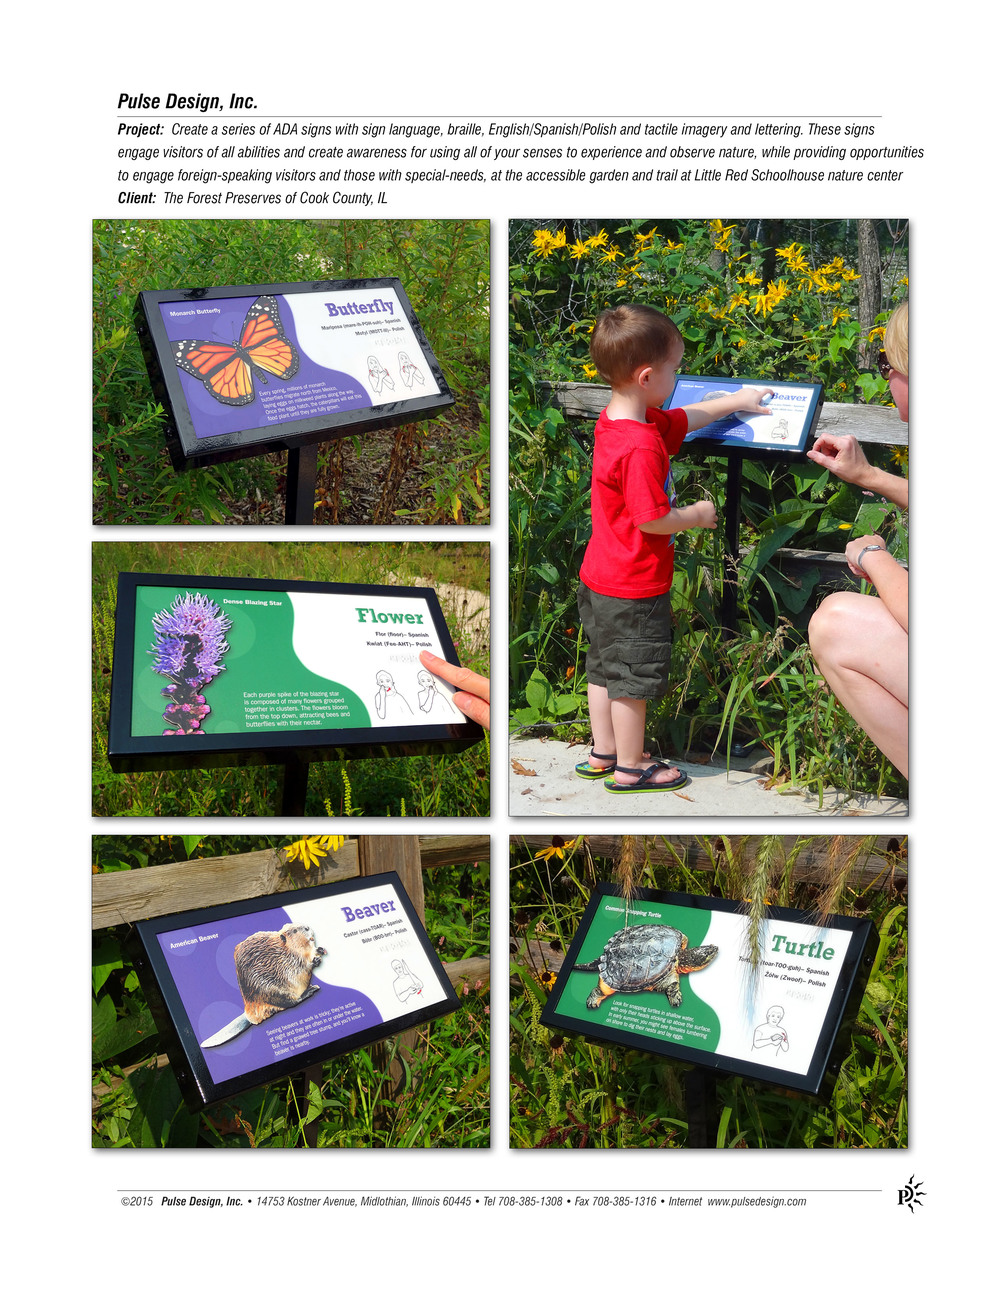 LittleRedSchoolhouse-Accessible-Garden-Trail-Sign-Photos2-Pulse-Design-Inc.jpg